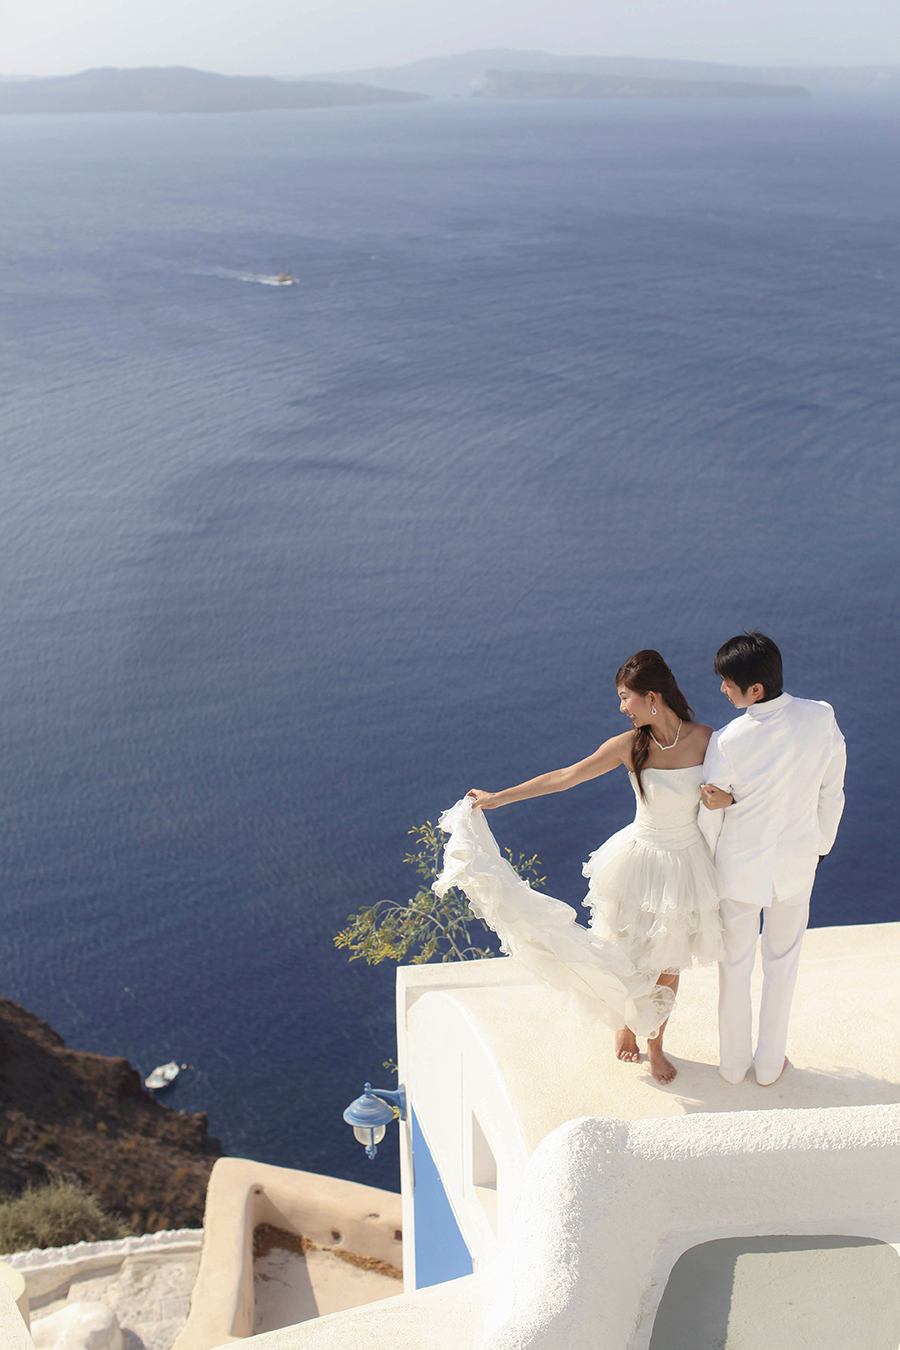 santorini greece . wedding photography by kurt ahs . 3089.jpg